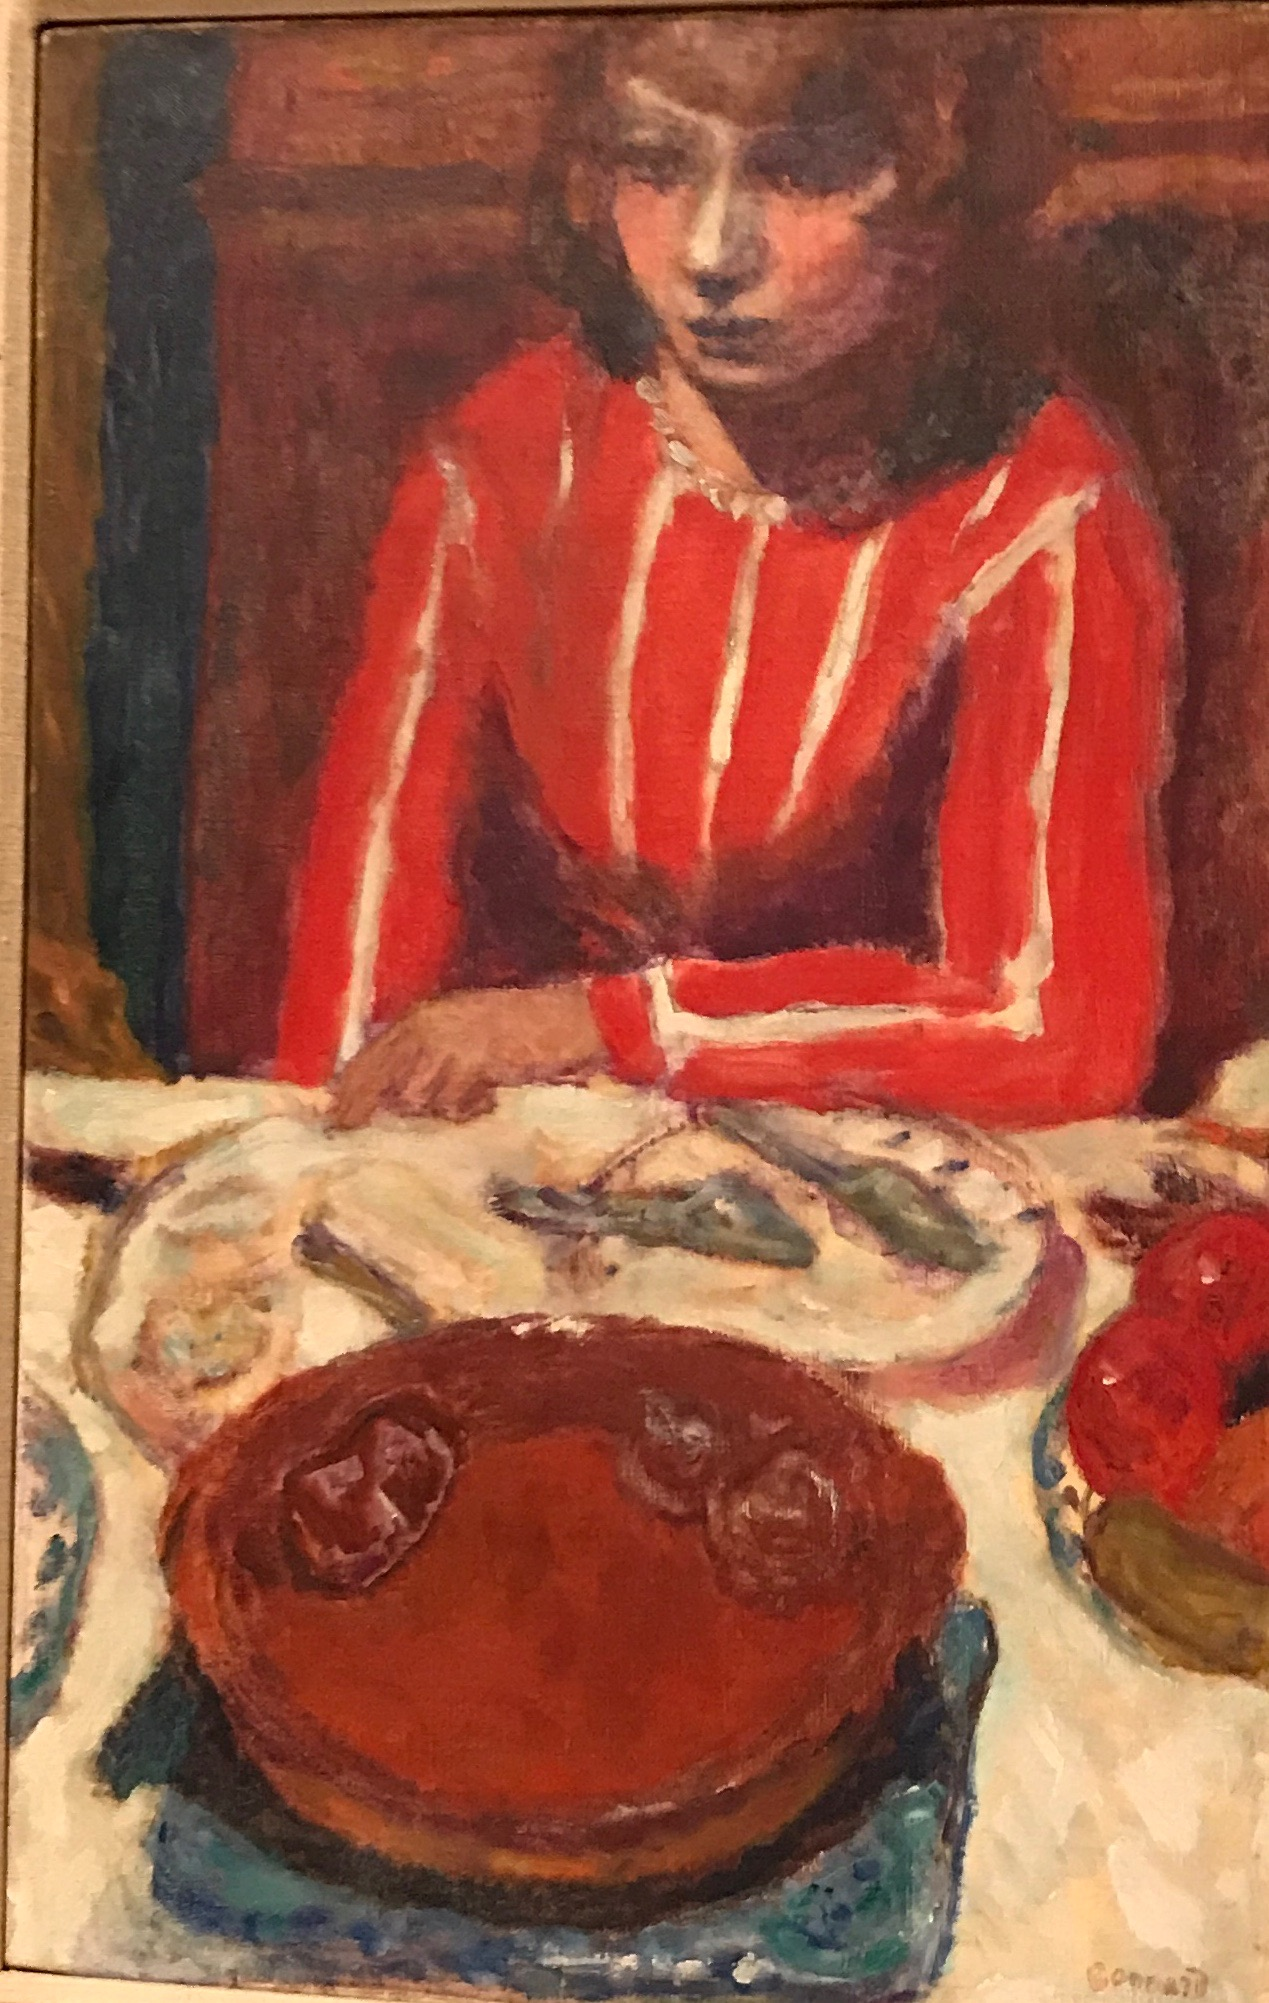 Pierre Bonnard, Femme a Table, 1926, (private collection)